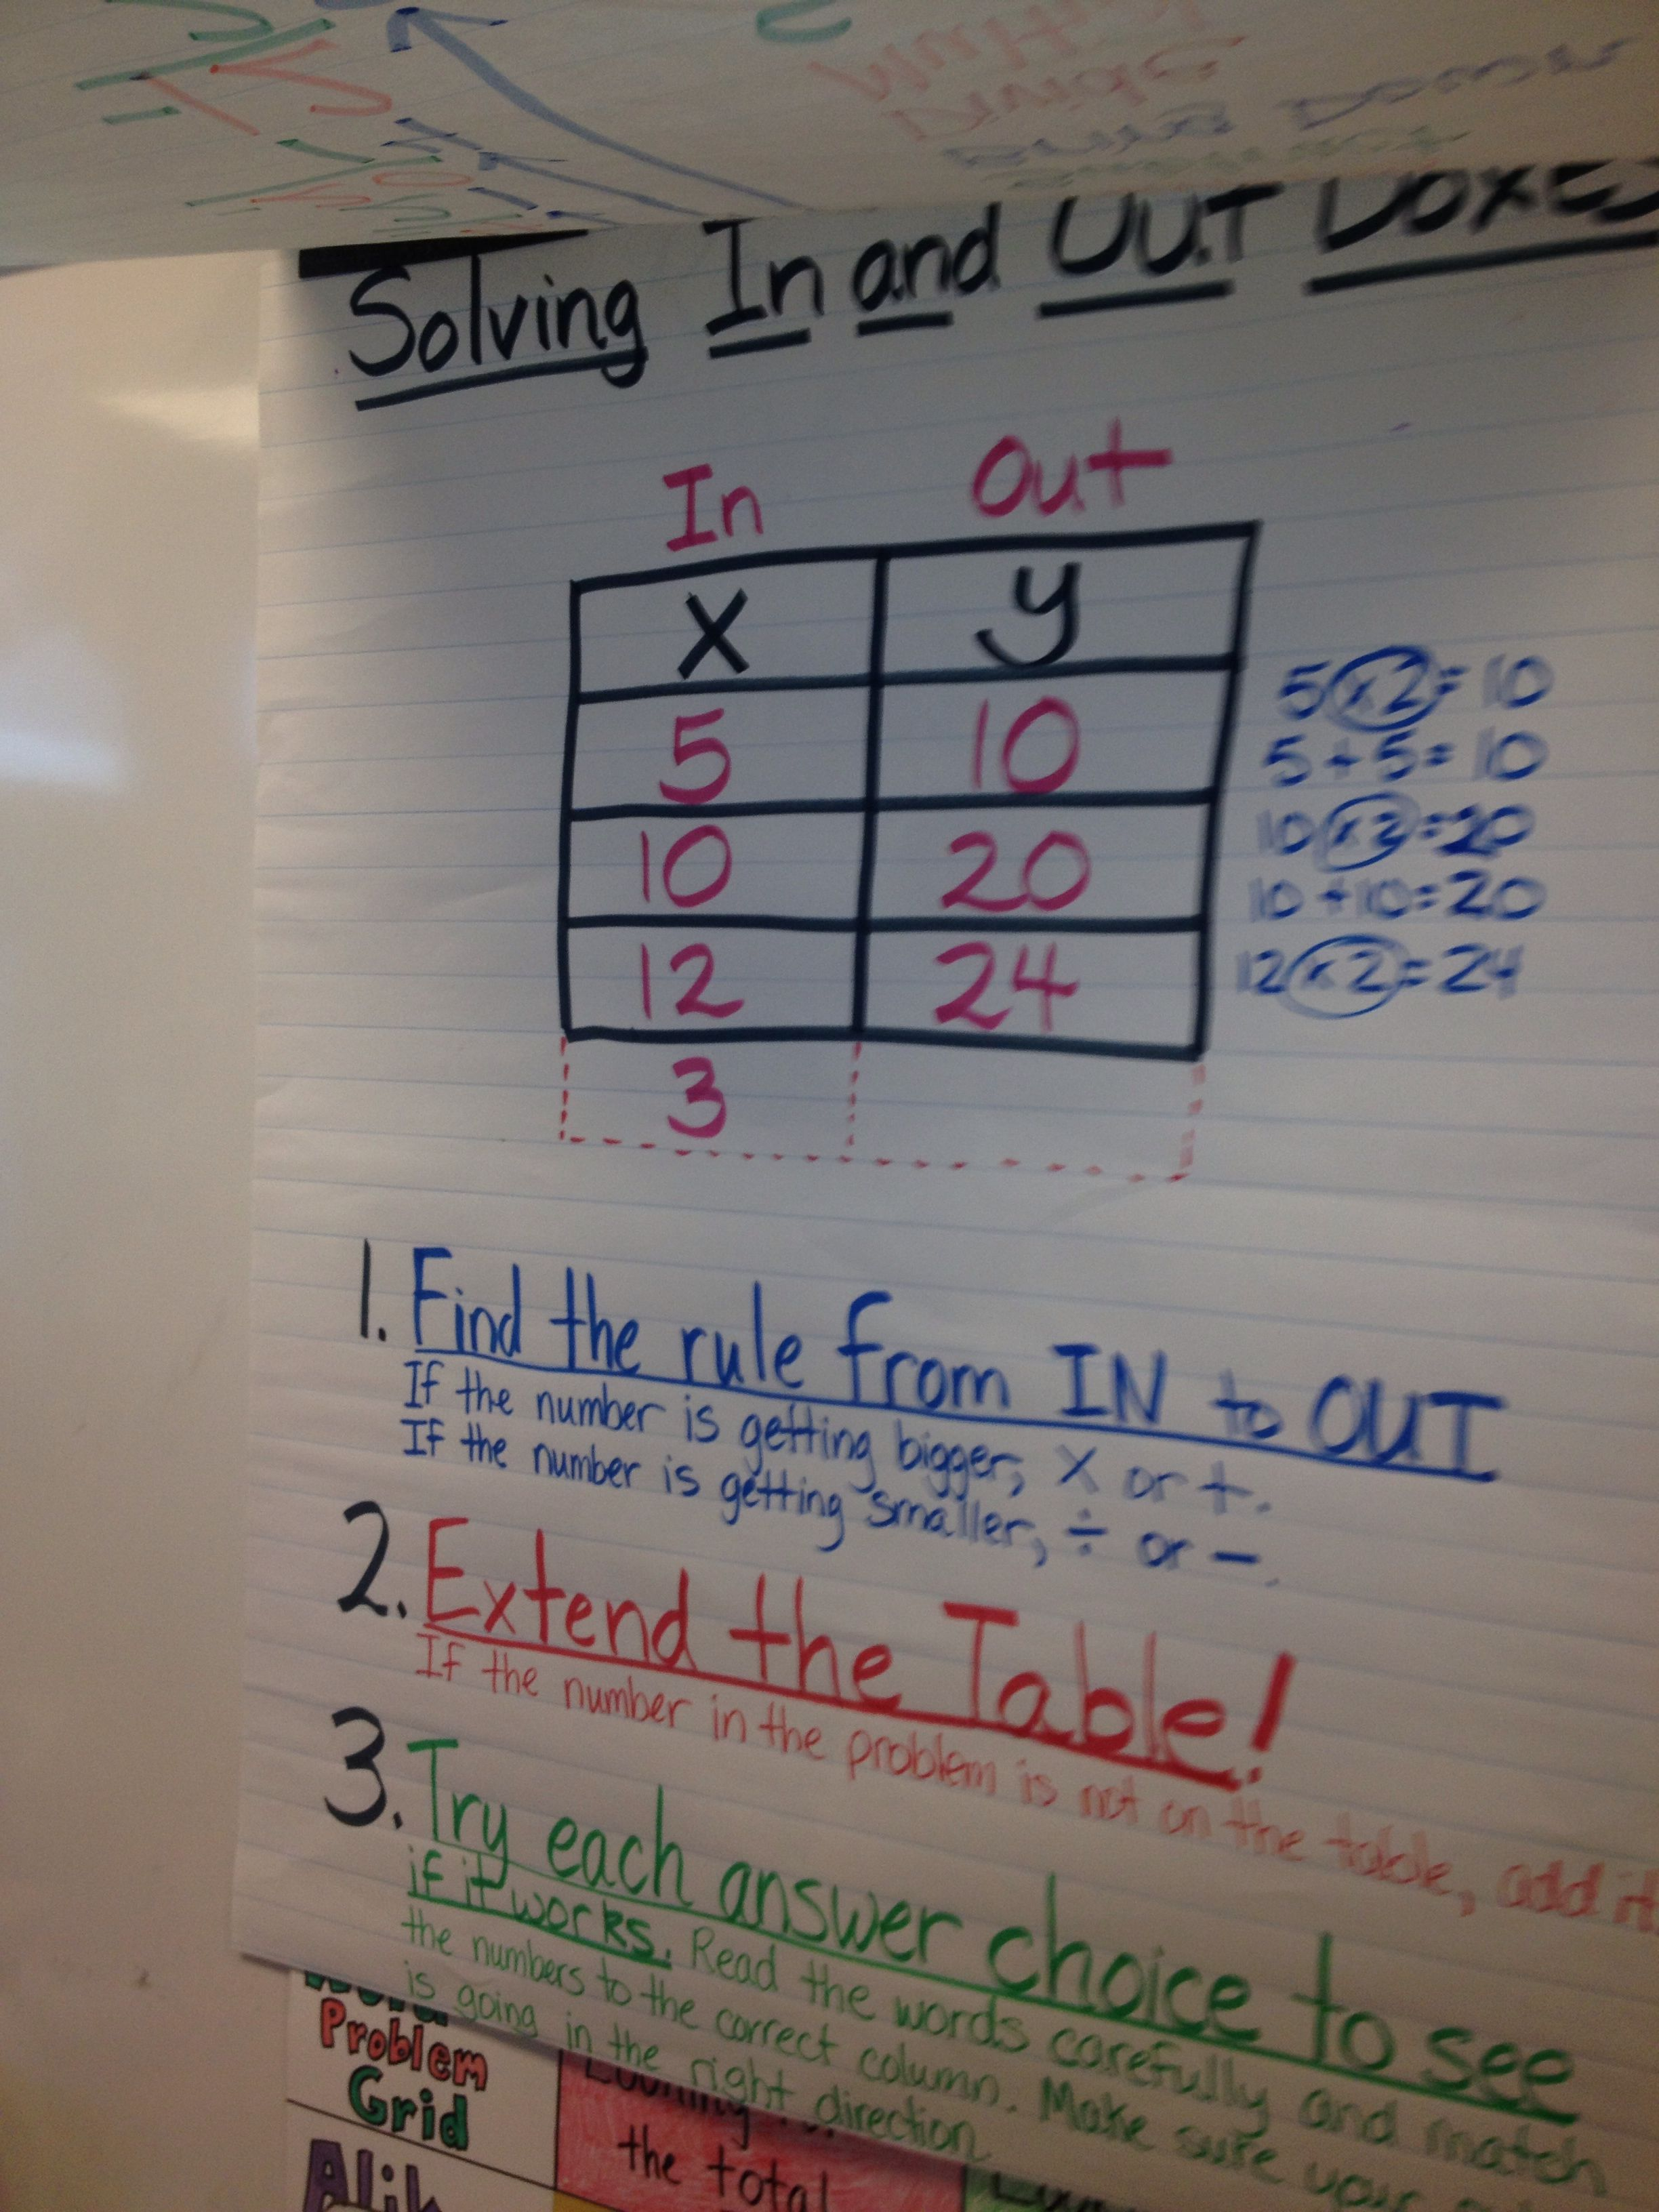 hight resolution of Solving in and out tables   Free math worksheets